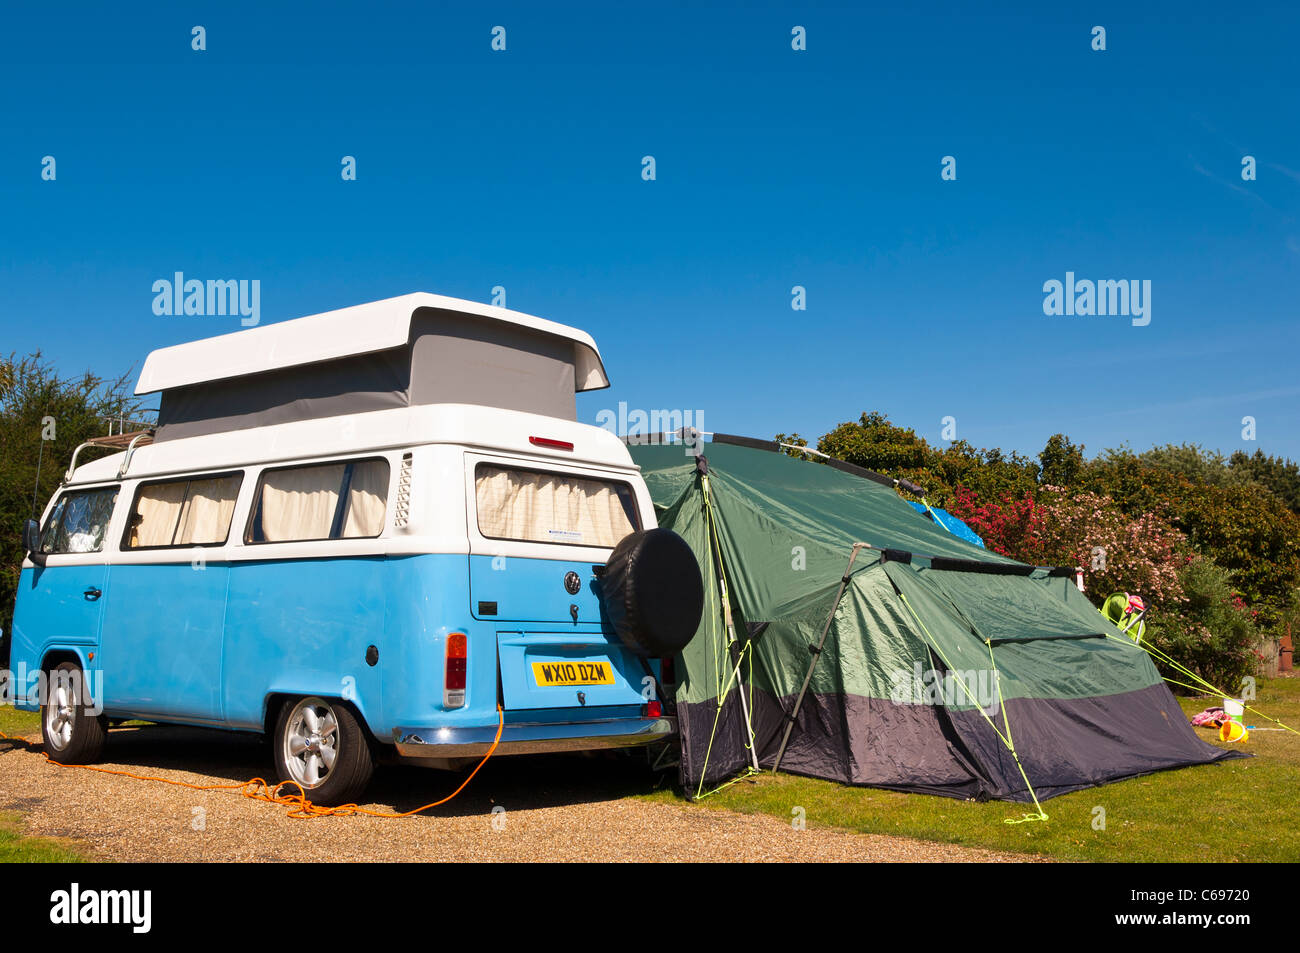 A VW camper set up camp along with tent on a Uk camping site - Stock Image